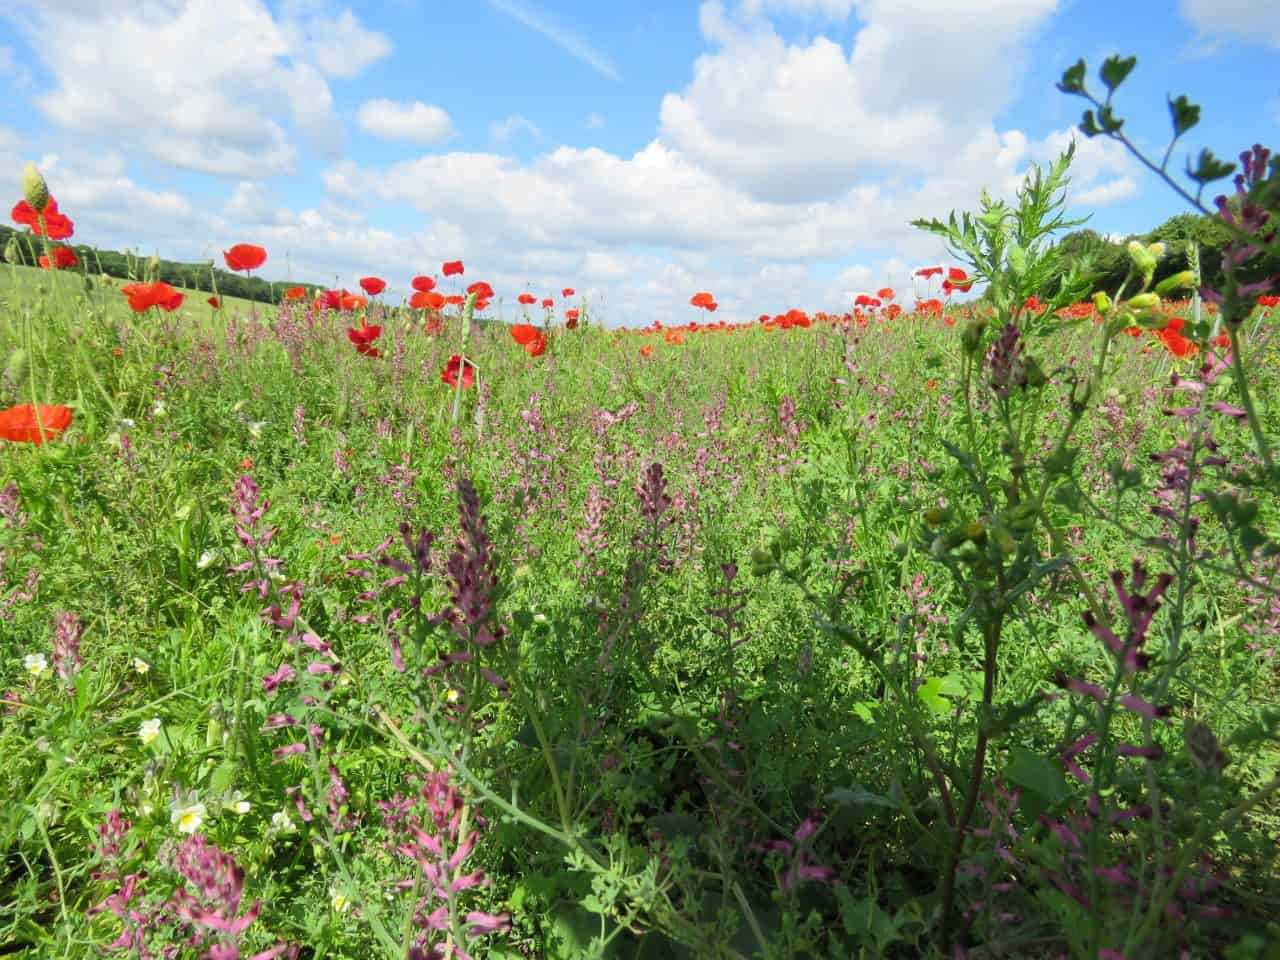 red poppies and wildflowers in a field